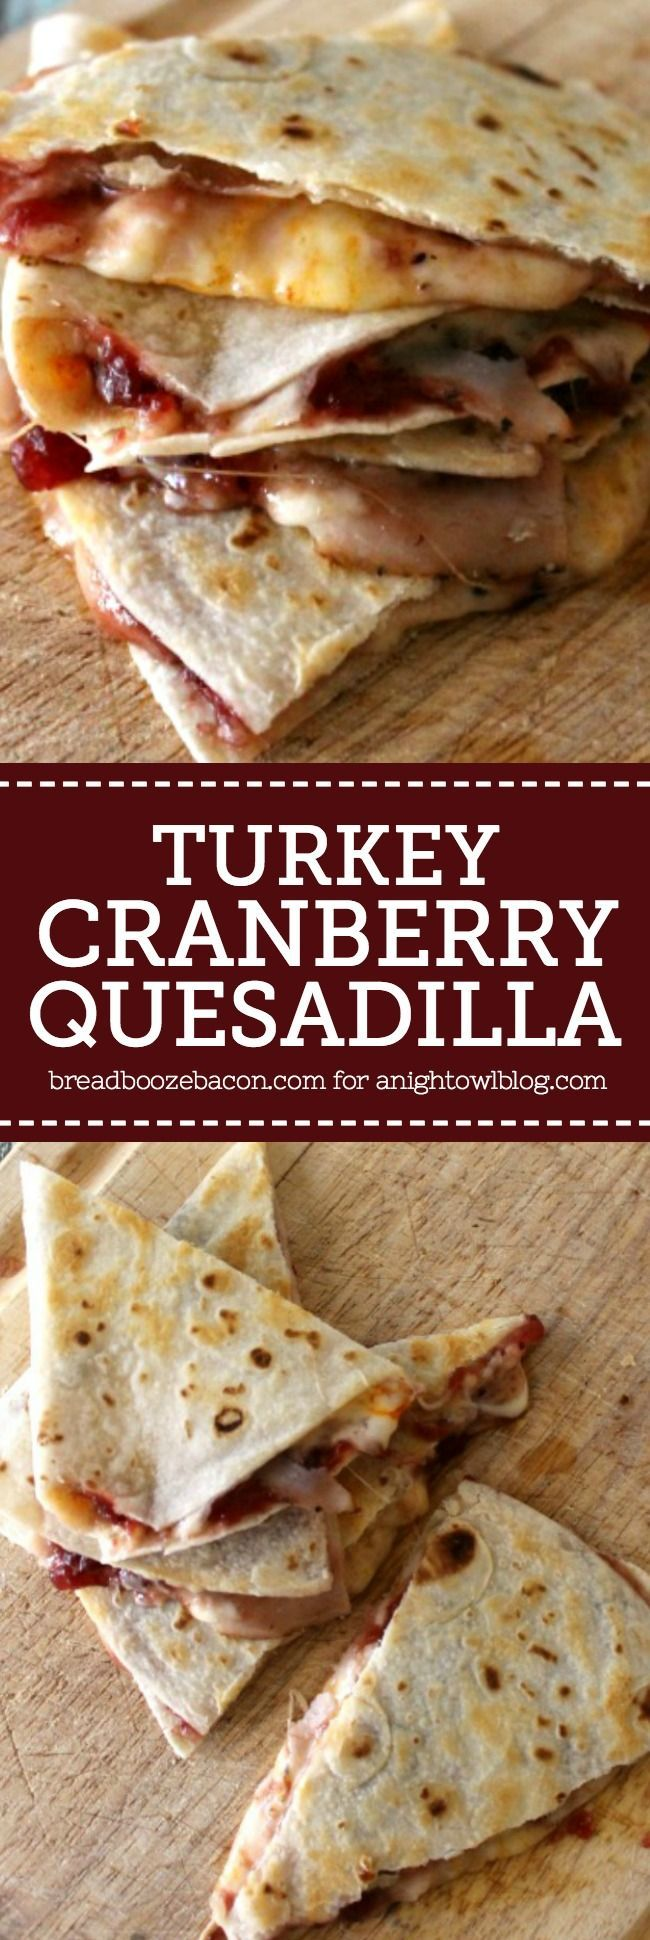 Turkey Cranberry Quesadilla - turn your favorite Thanksgiving flavors ...